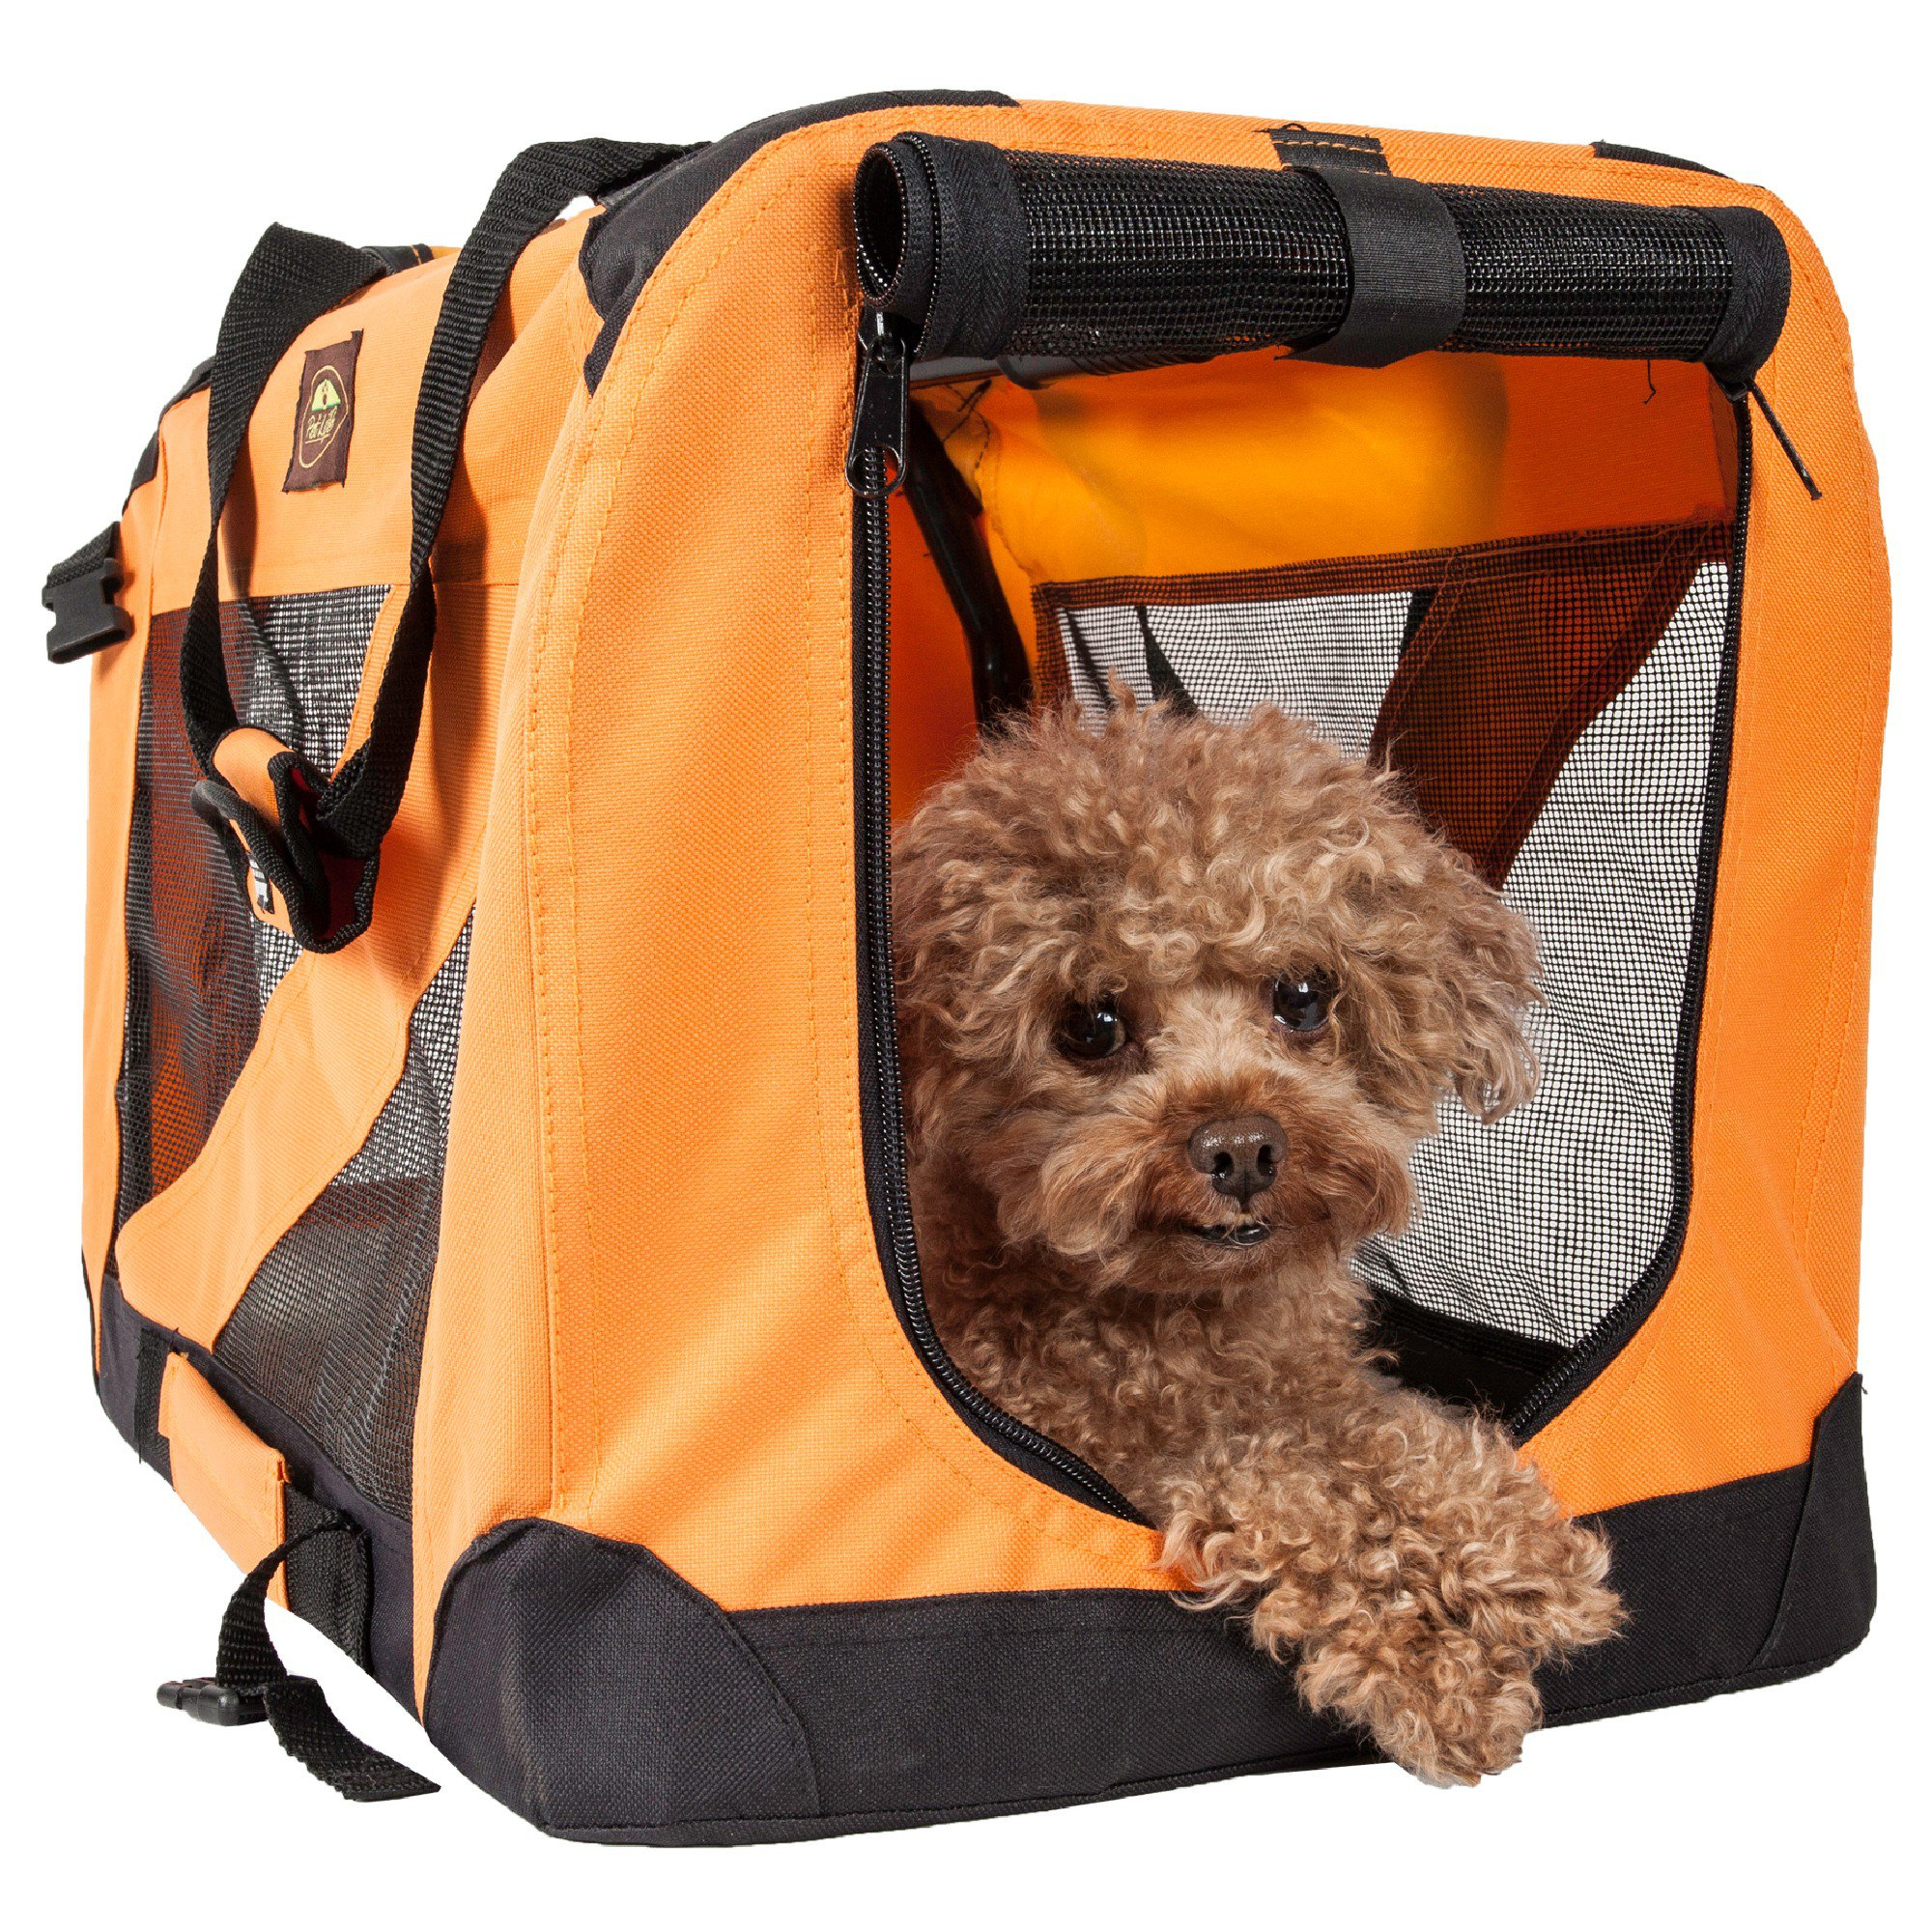 Pet Life Folding Zippered 360 Degree Vista View House Pet Crate In Orange, Small